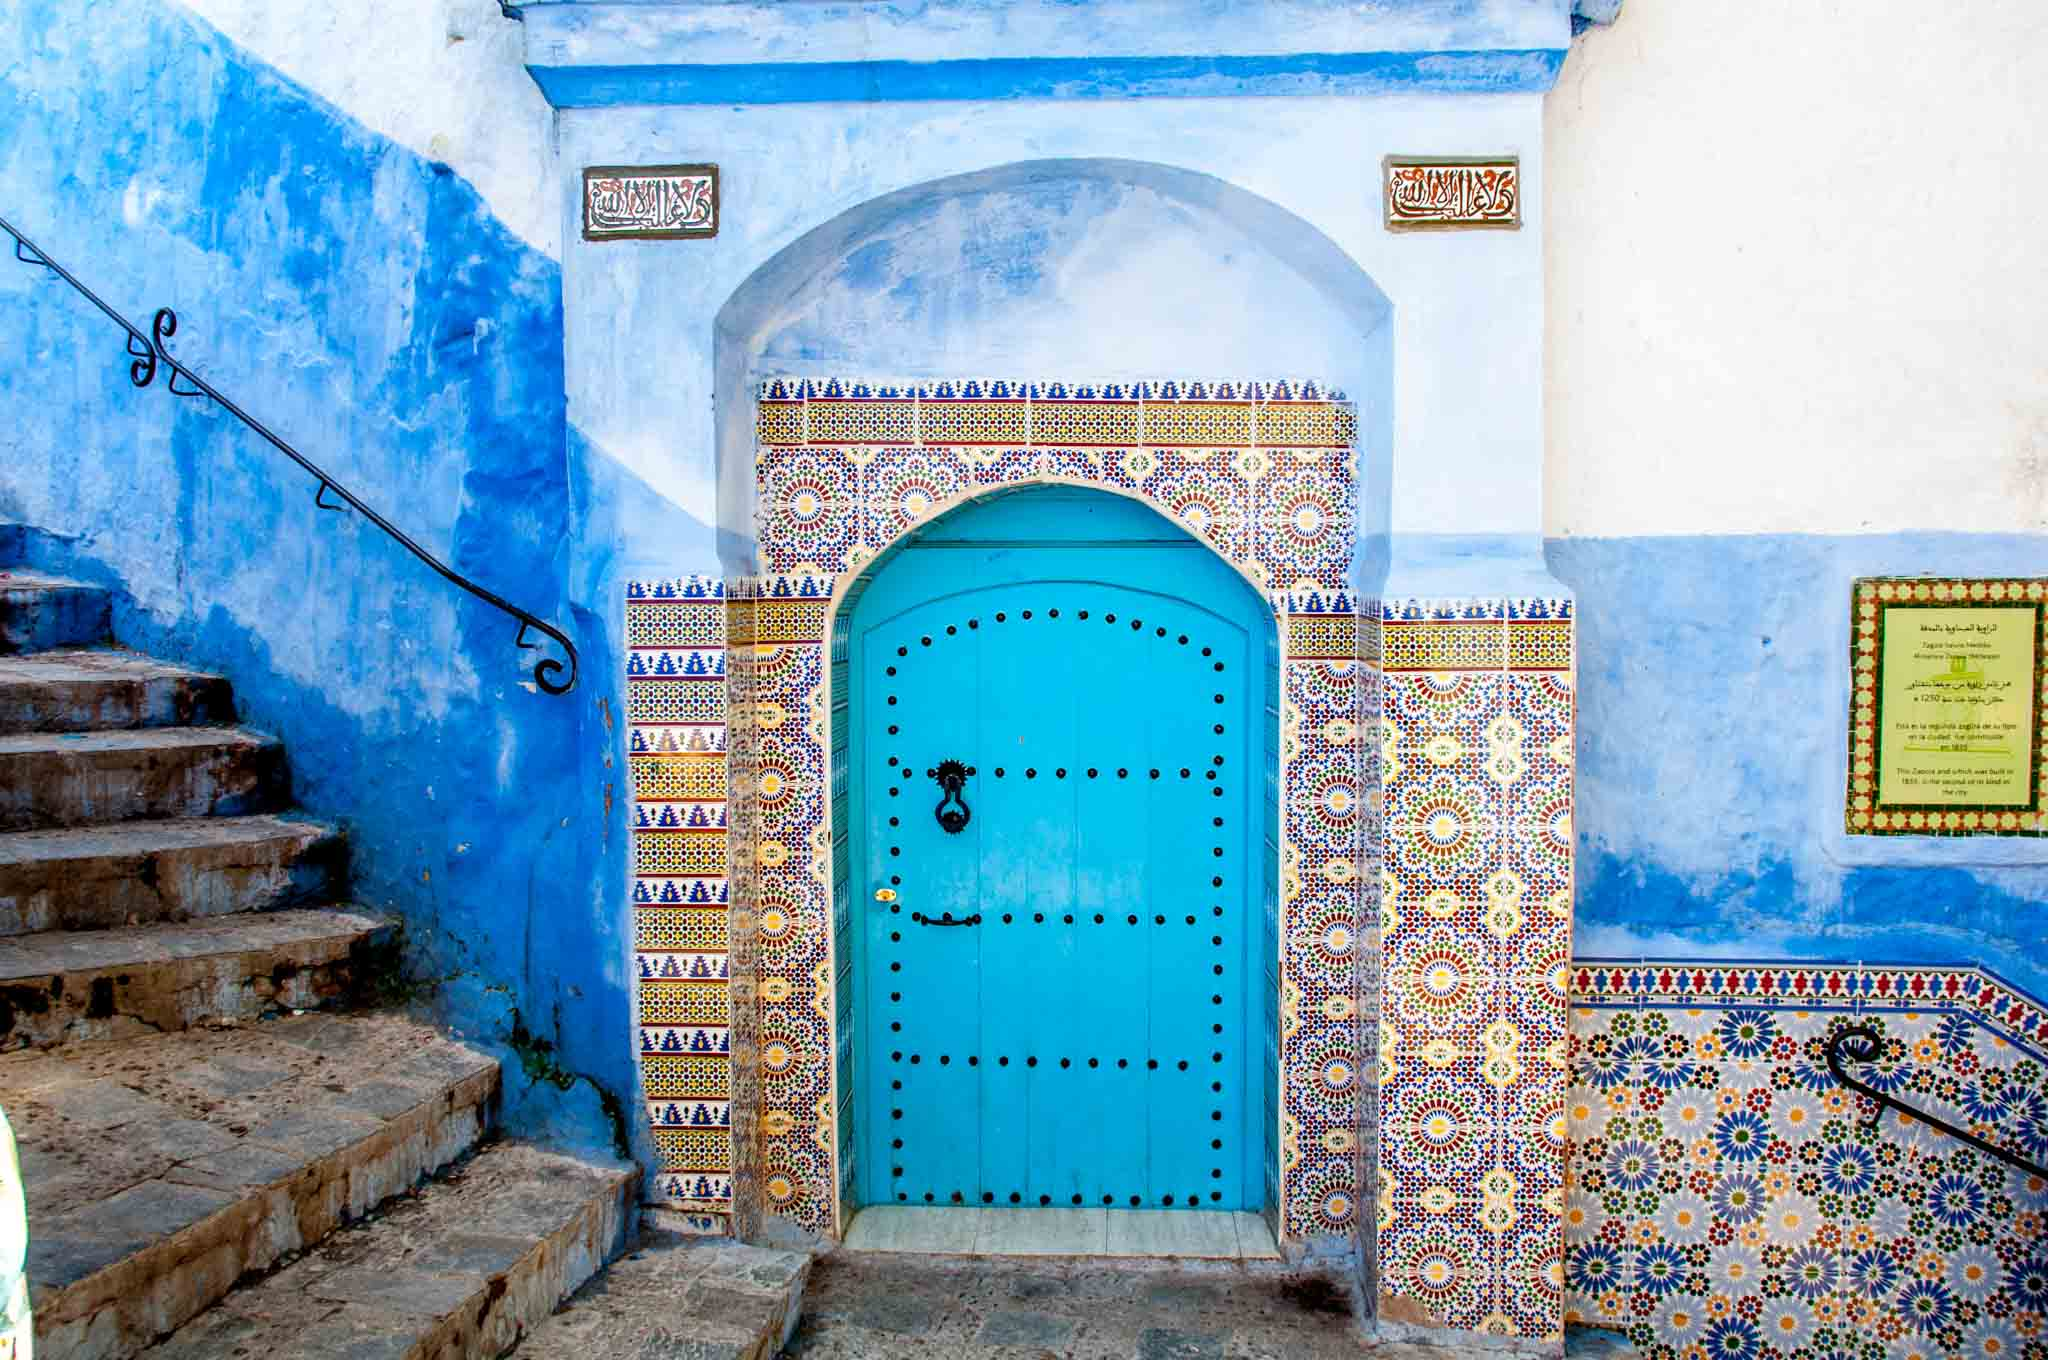 Blue door and tilework in Chefchaouen, Morocco